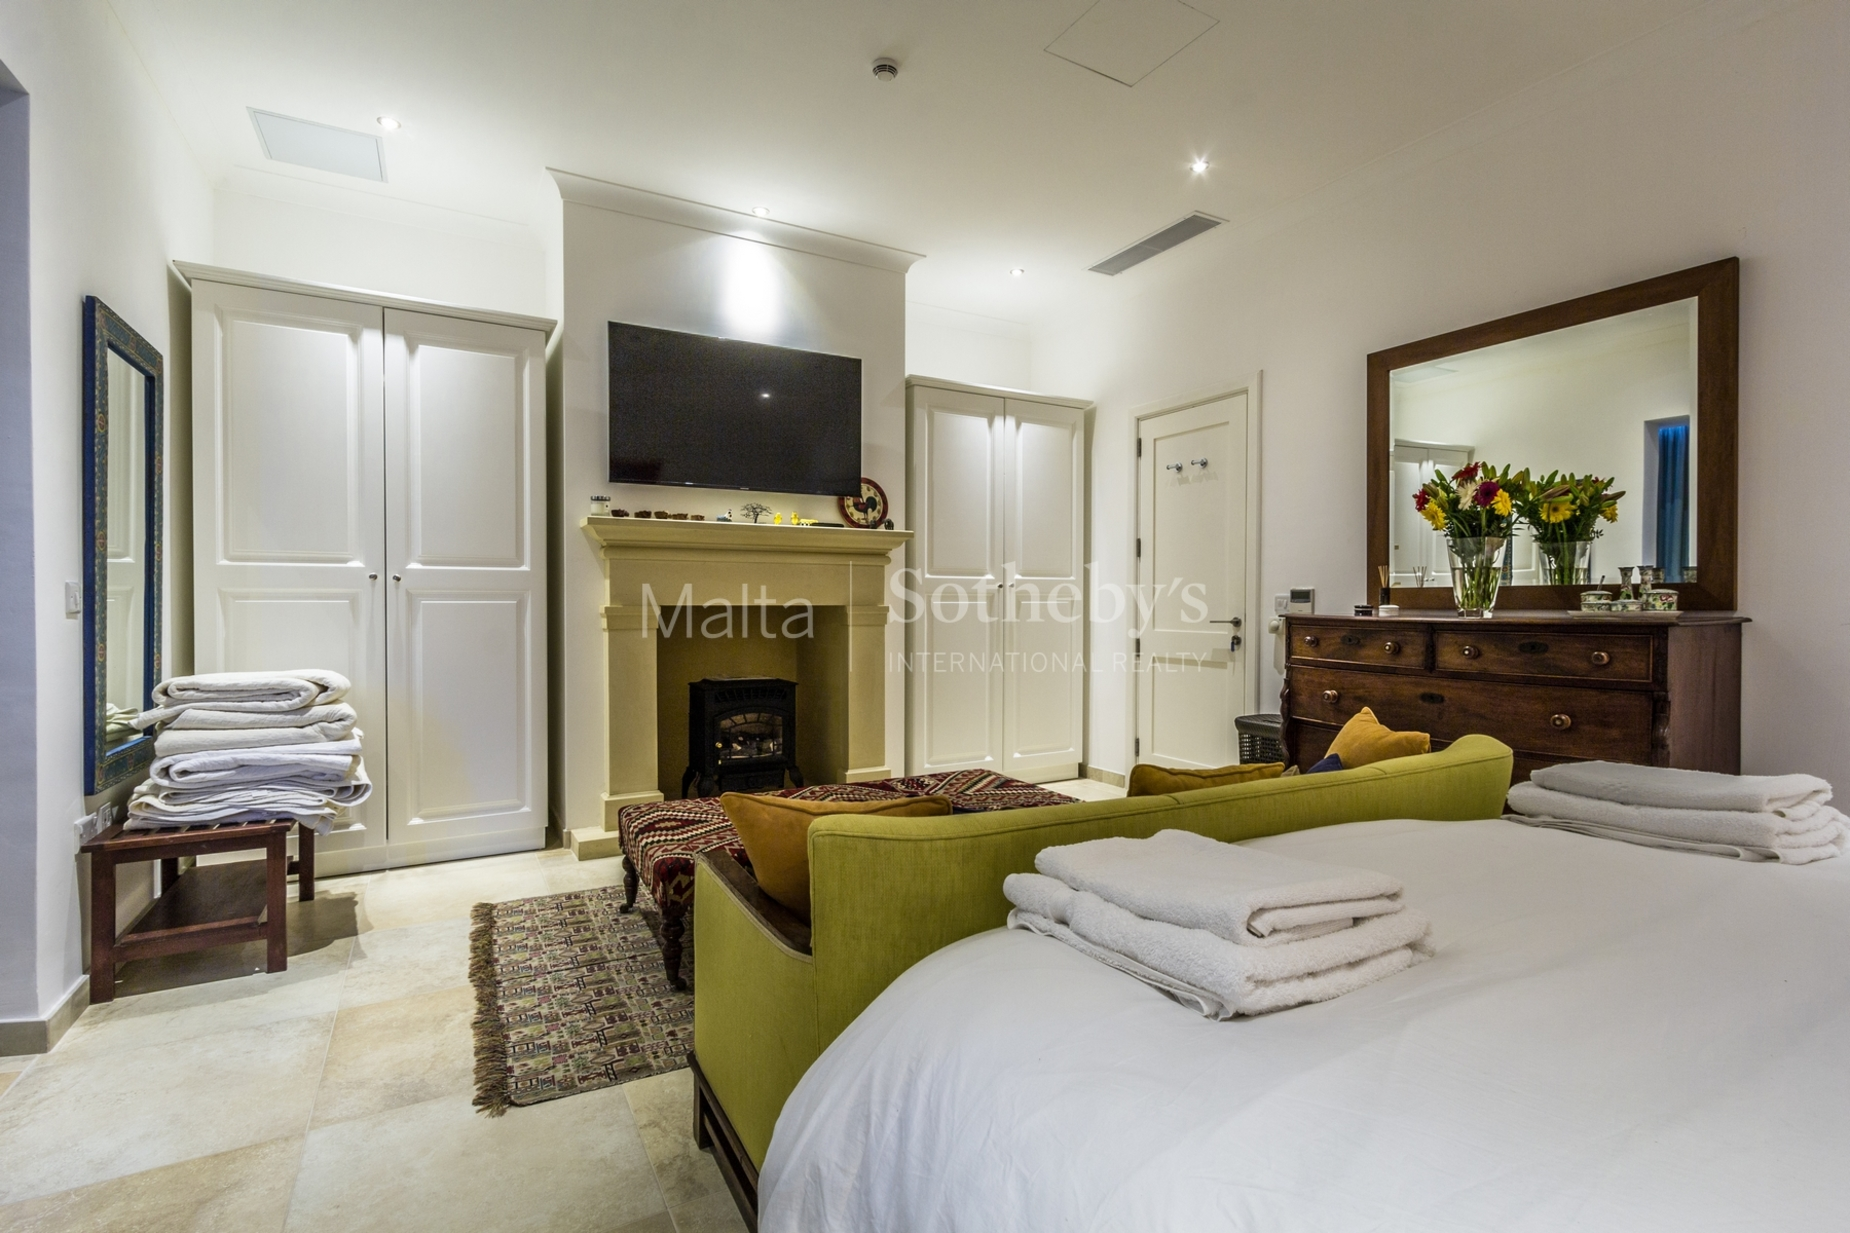 3 bed Town House For Rent in Valletta, Valletta - thumb 7